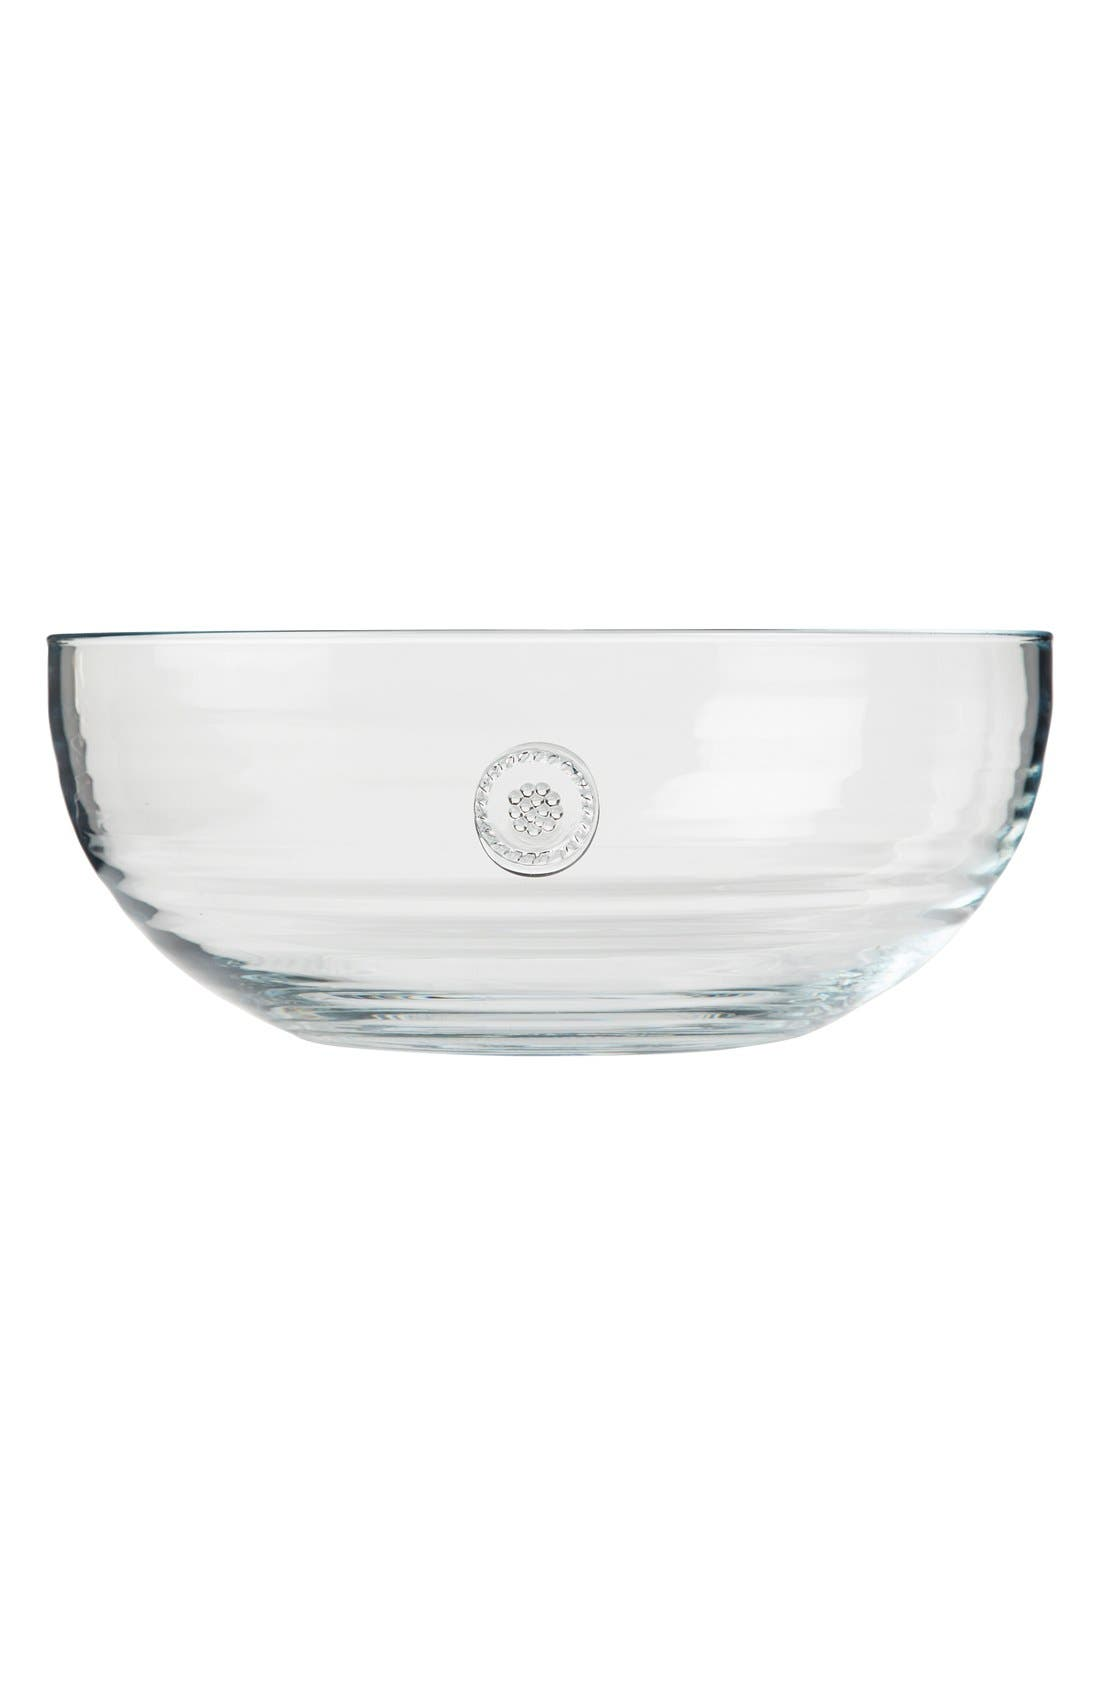 Berry & Thread Large Glass Bowl,                         Main,                         color, Clear